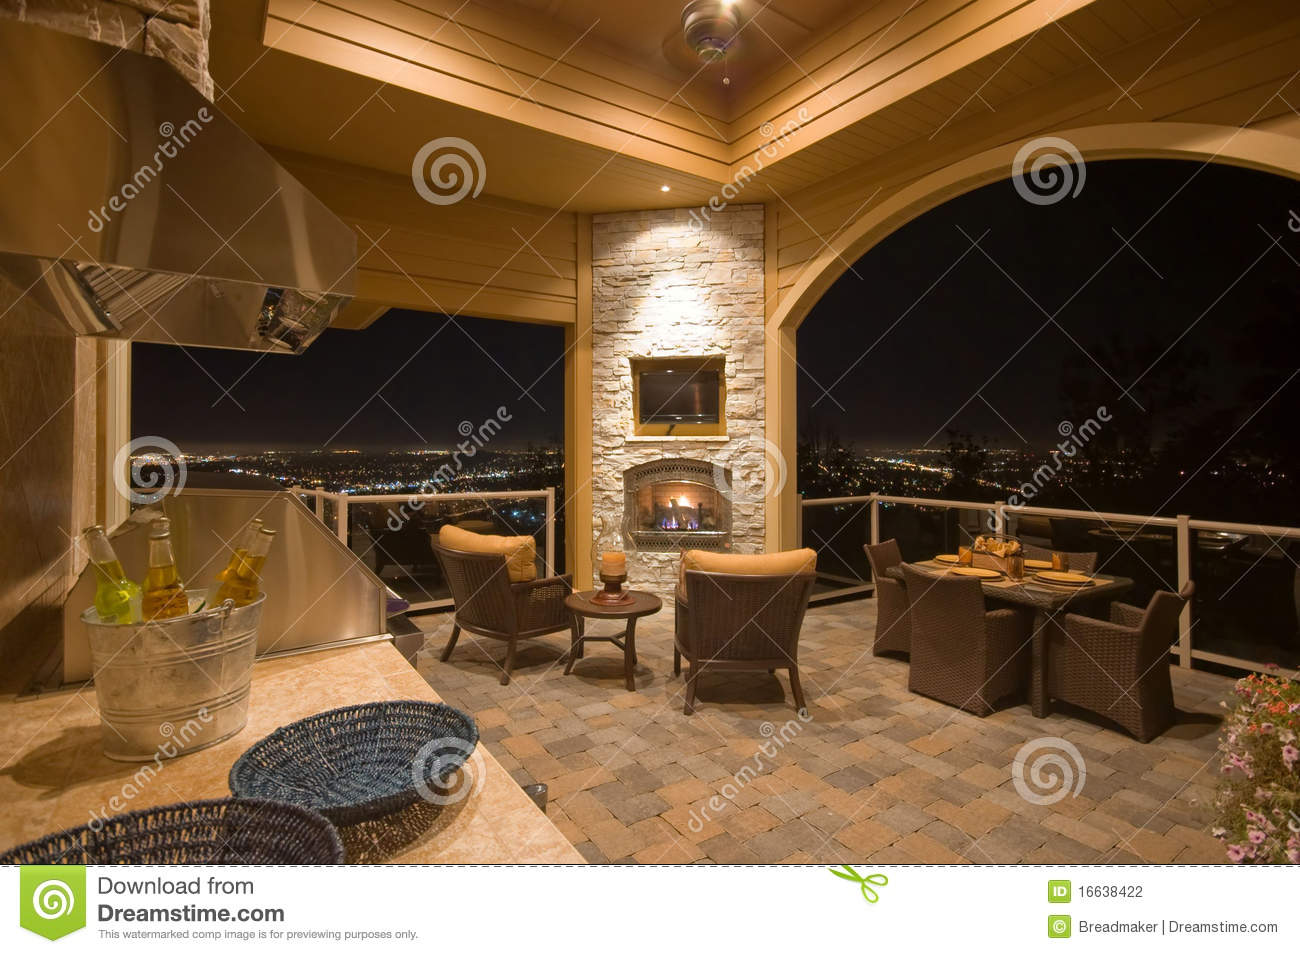 Furnished Patio With Fireplace Stock Photography - Image ...